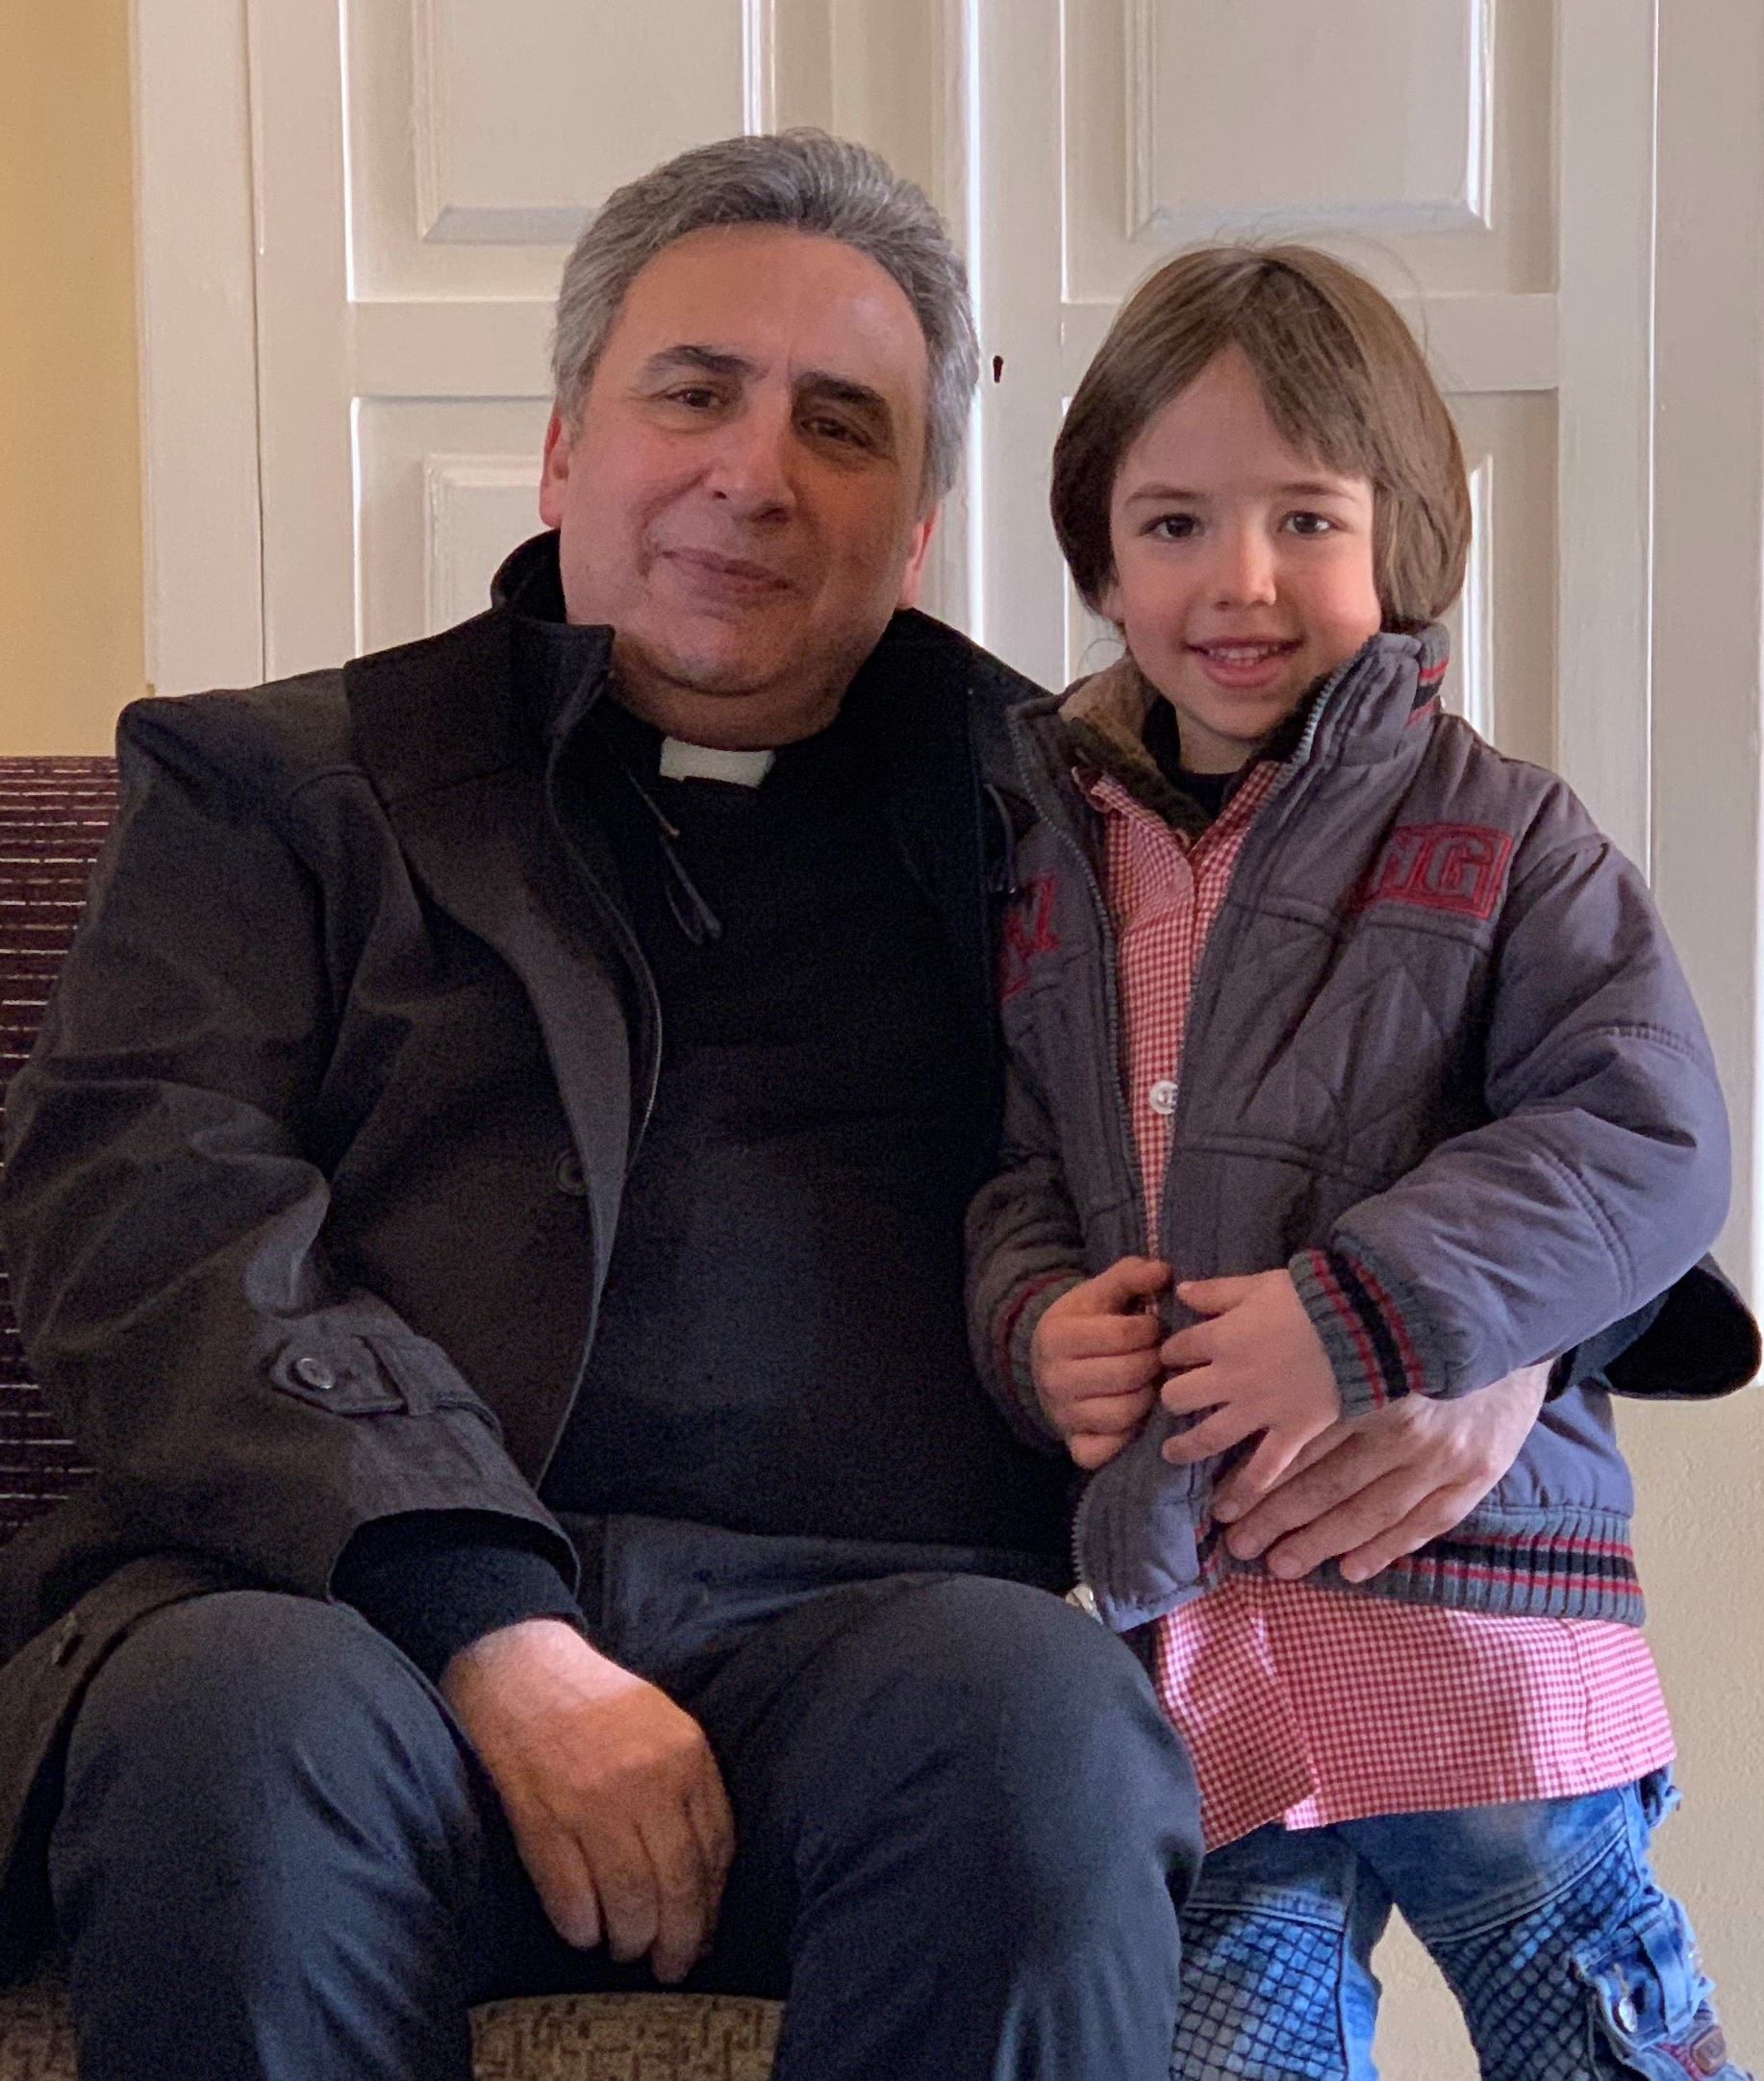 Last fall Rev. Kassab baptized young Christian, whose parents had waited until the church was repaired after damage sustained in the war. Christian was baptized at the rededication service!